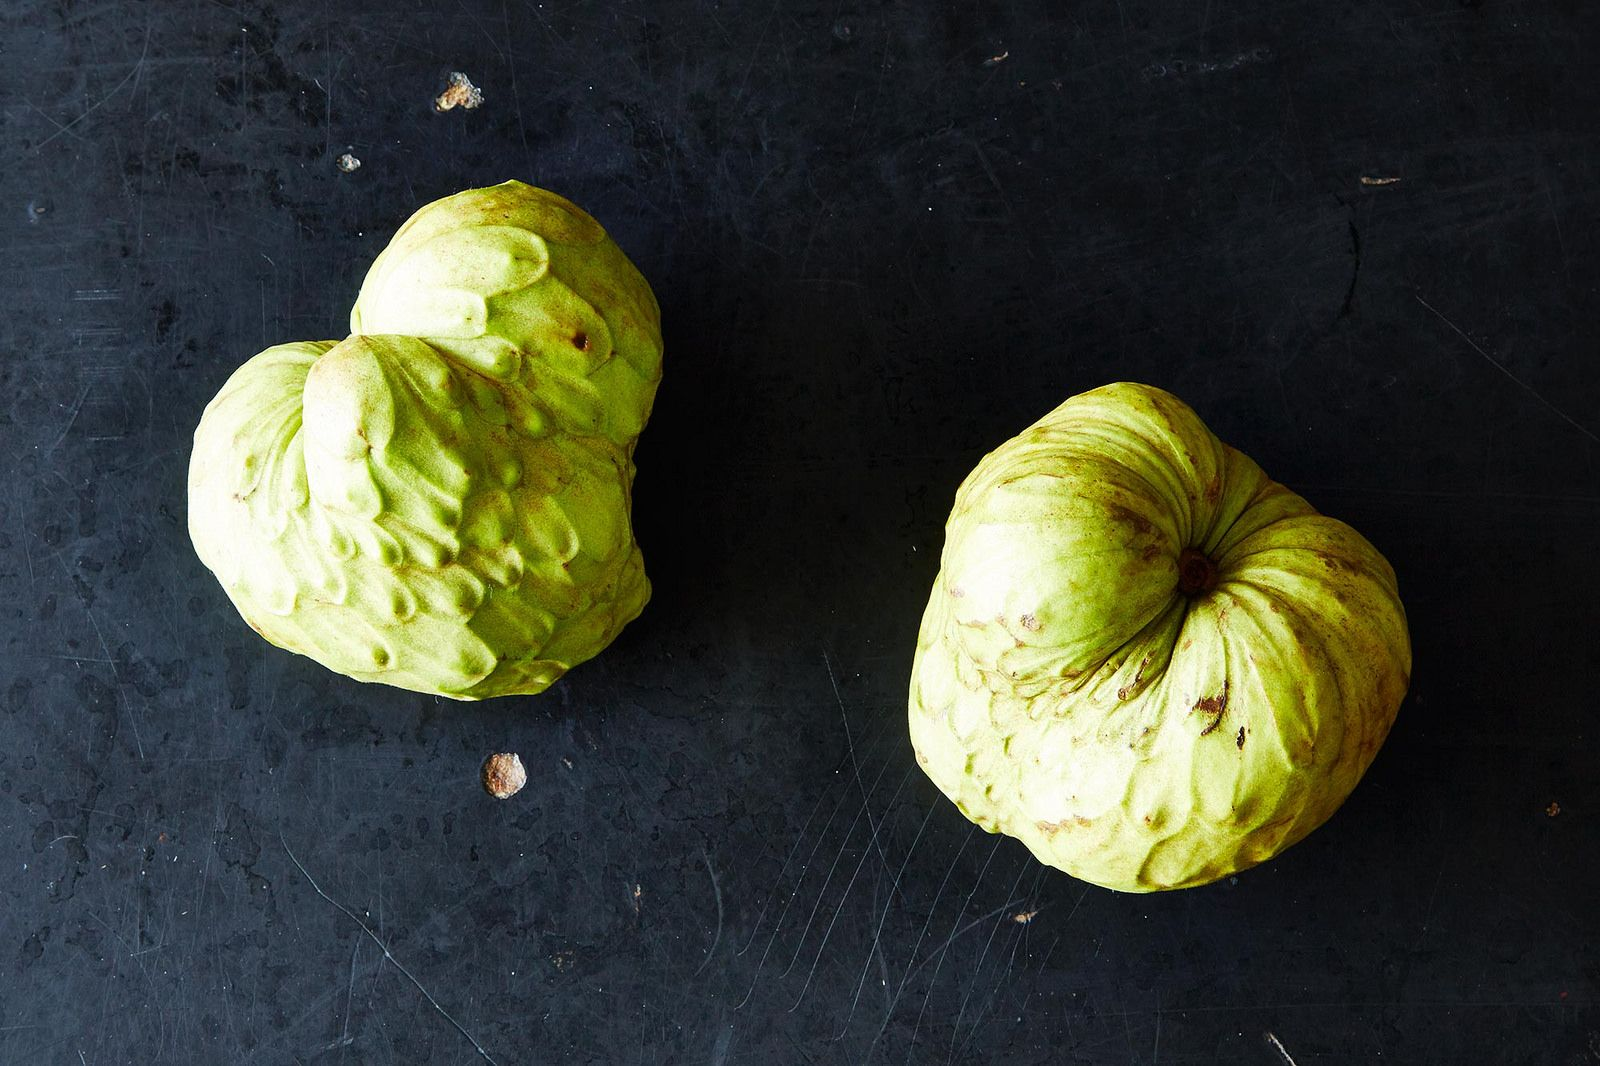 Cherimoyas and the Best Way to Eat Them, from Food52